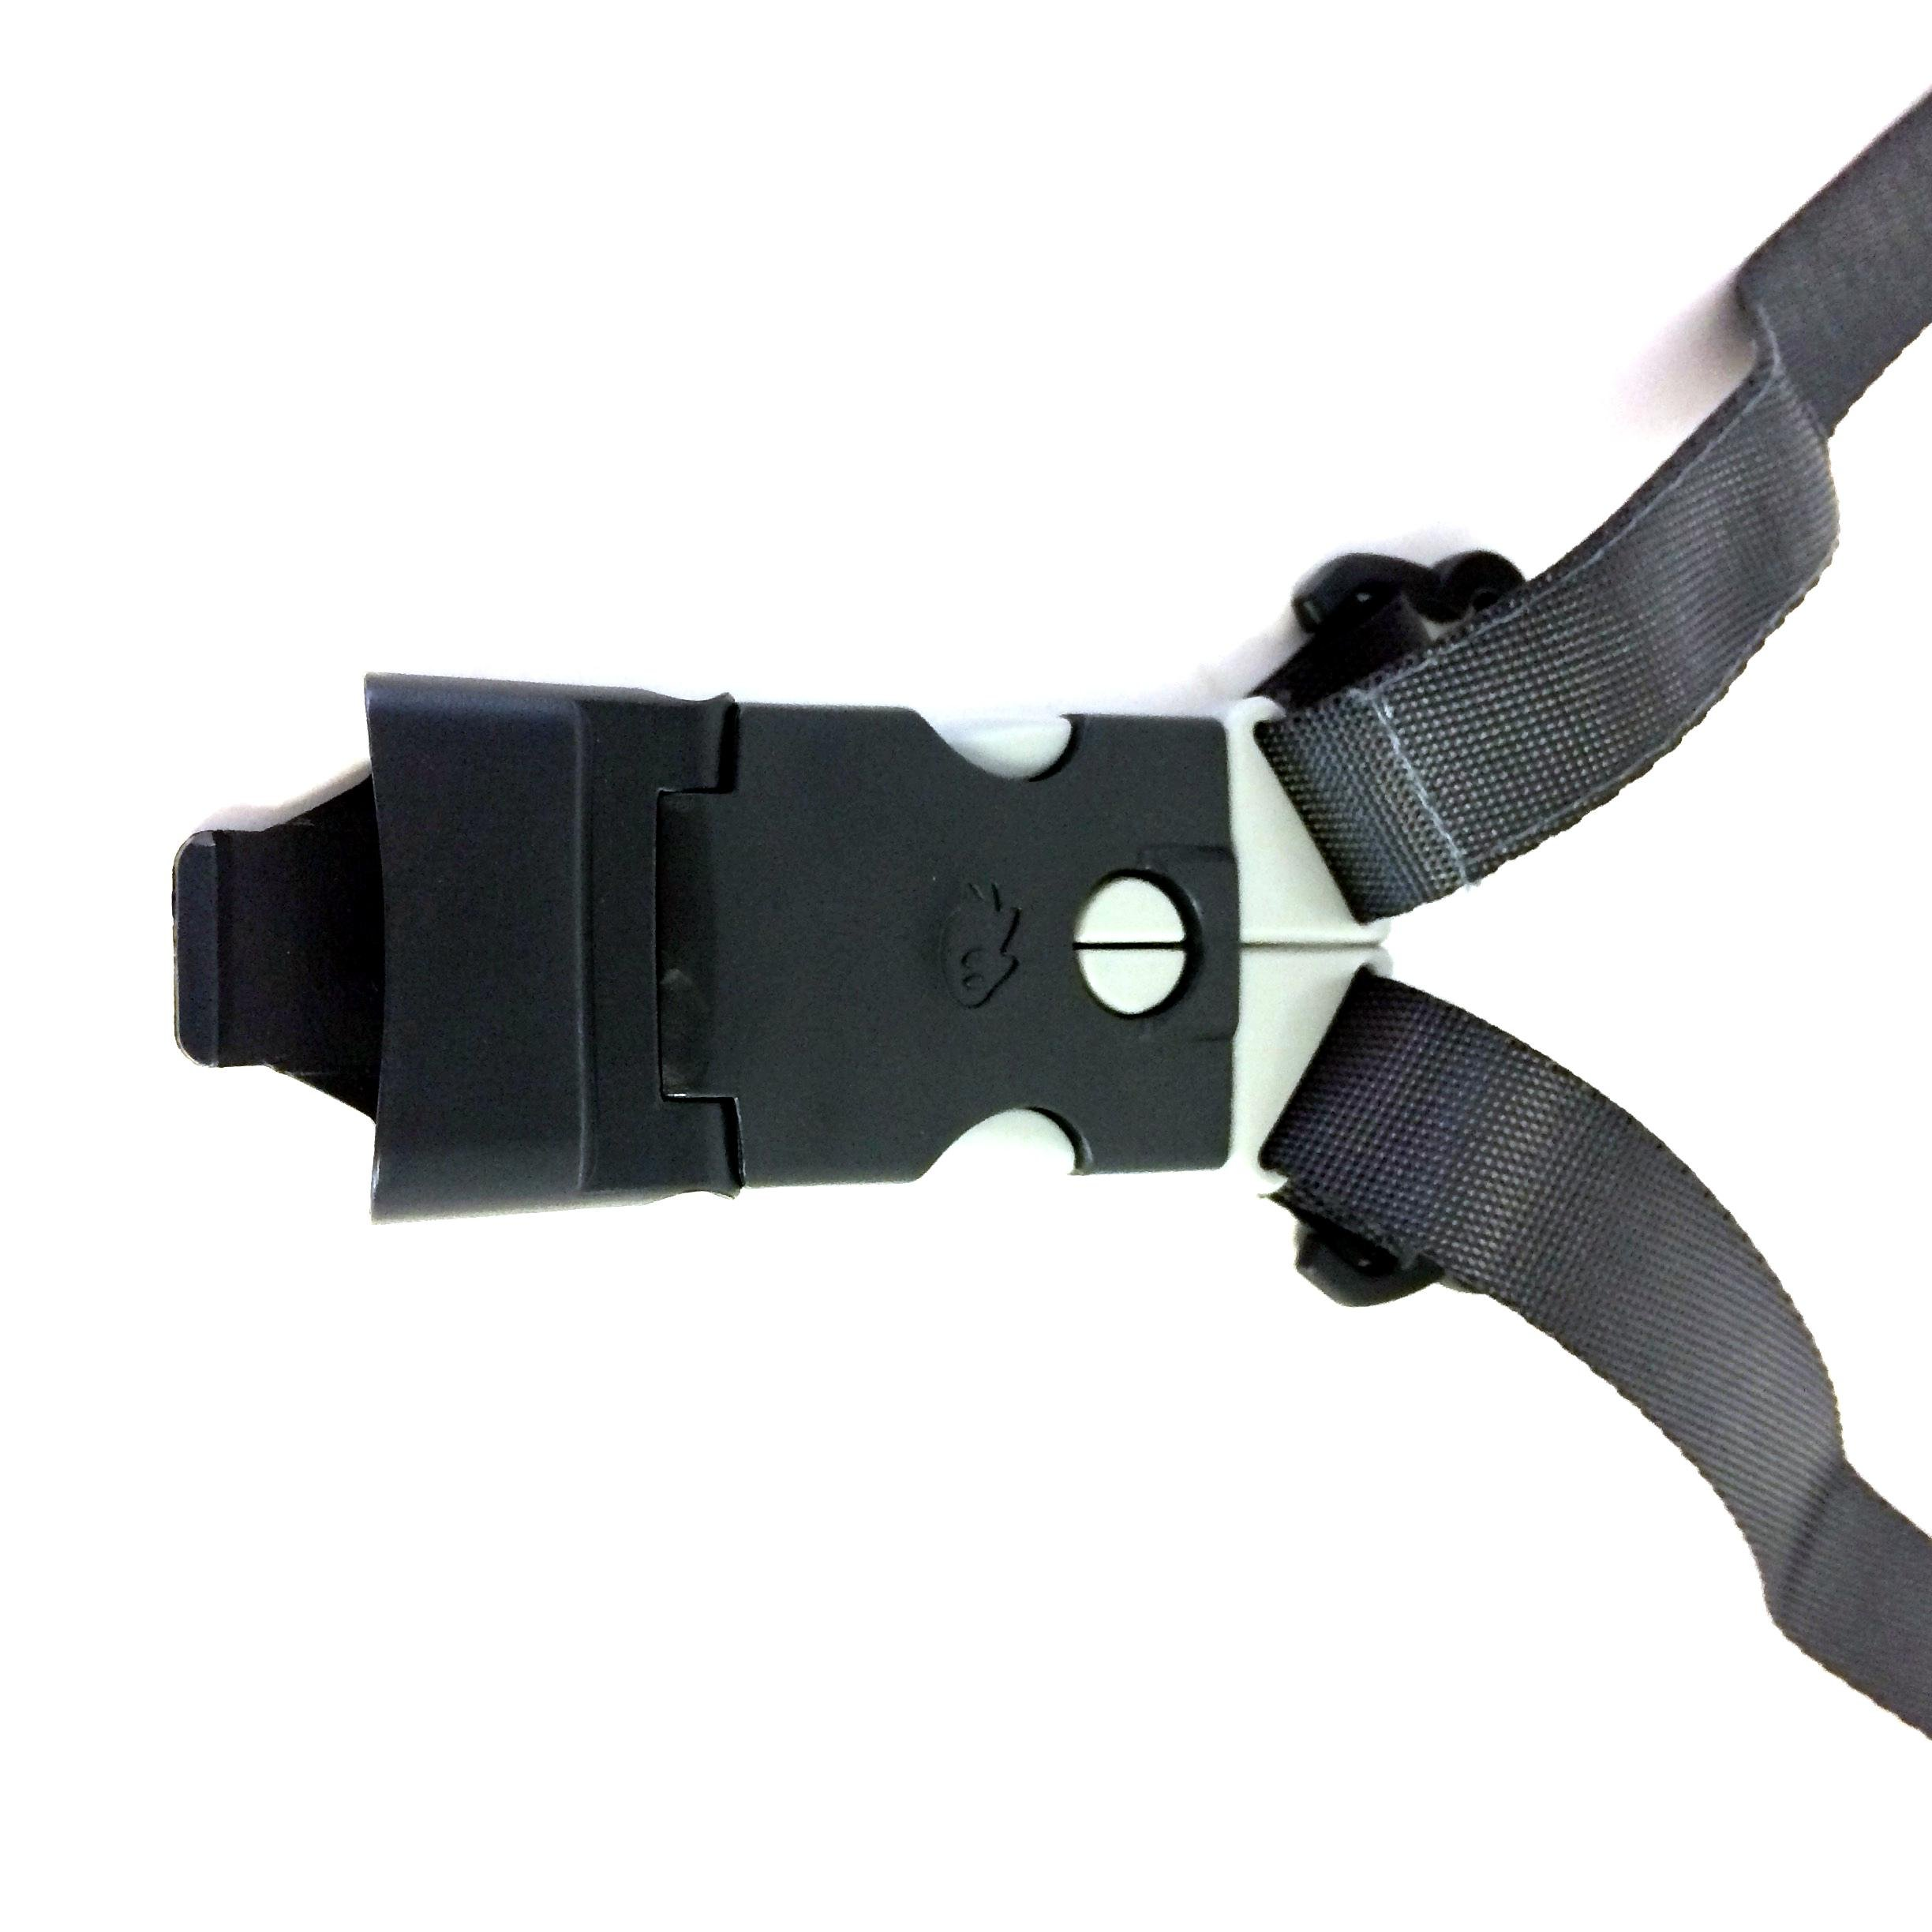 Thule Yepp Mini Child Carrier Replacement Harness - 1500052755 by Yepp (Image #1)